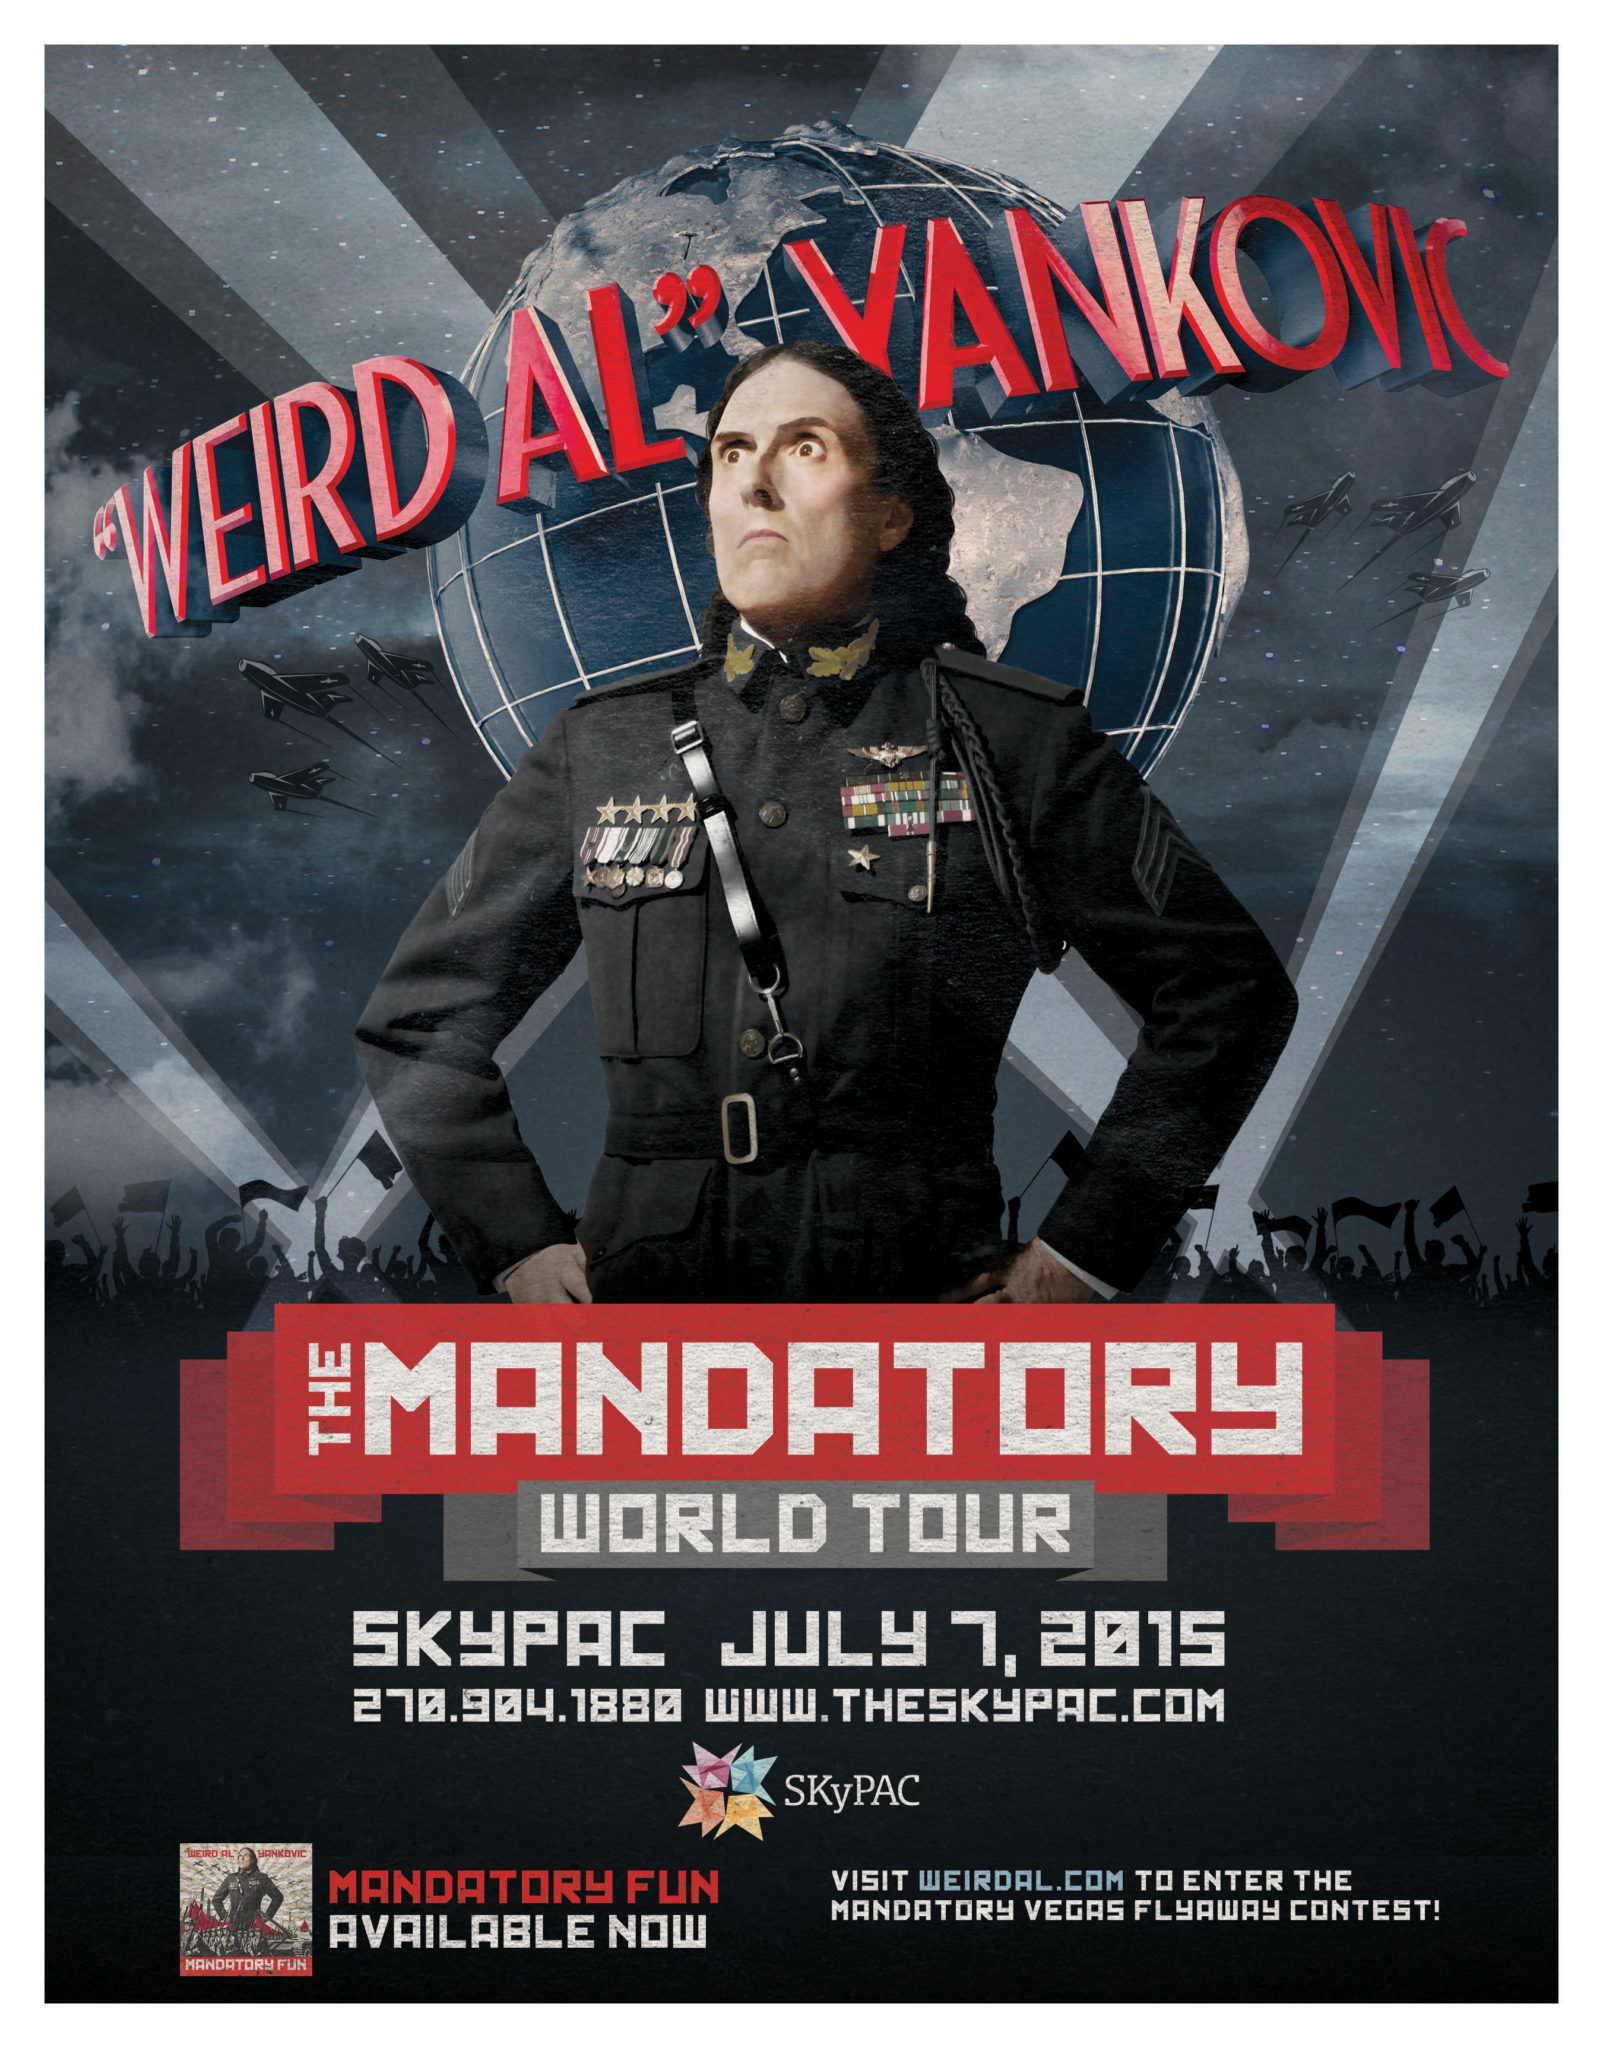 Weird Al' Yankovic tour will include Bowling Green show